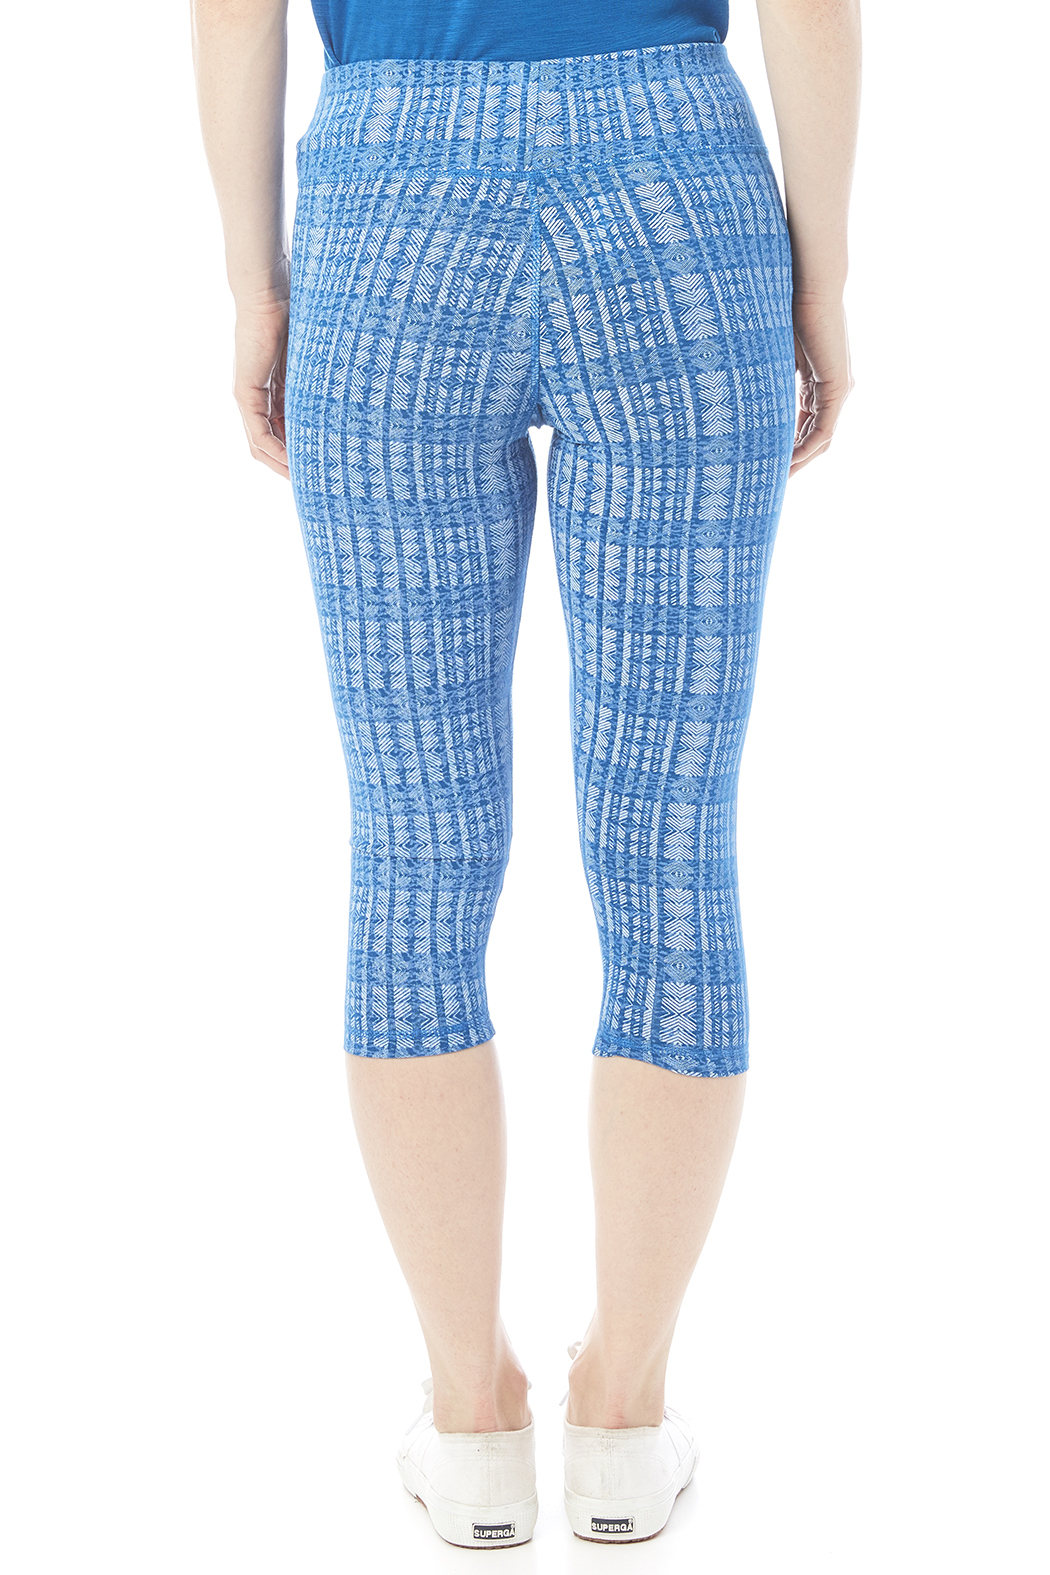 Tasc Performance Print Bamboo Crop Pant - Back Cropped Image